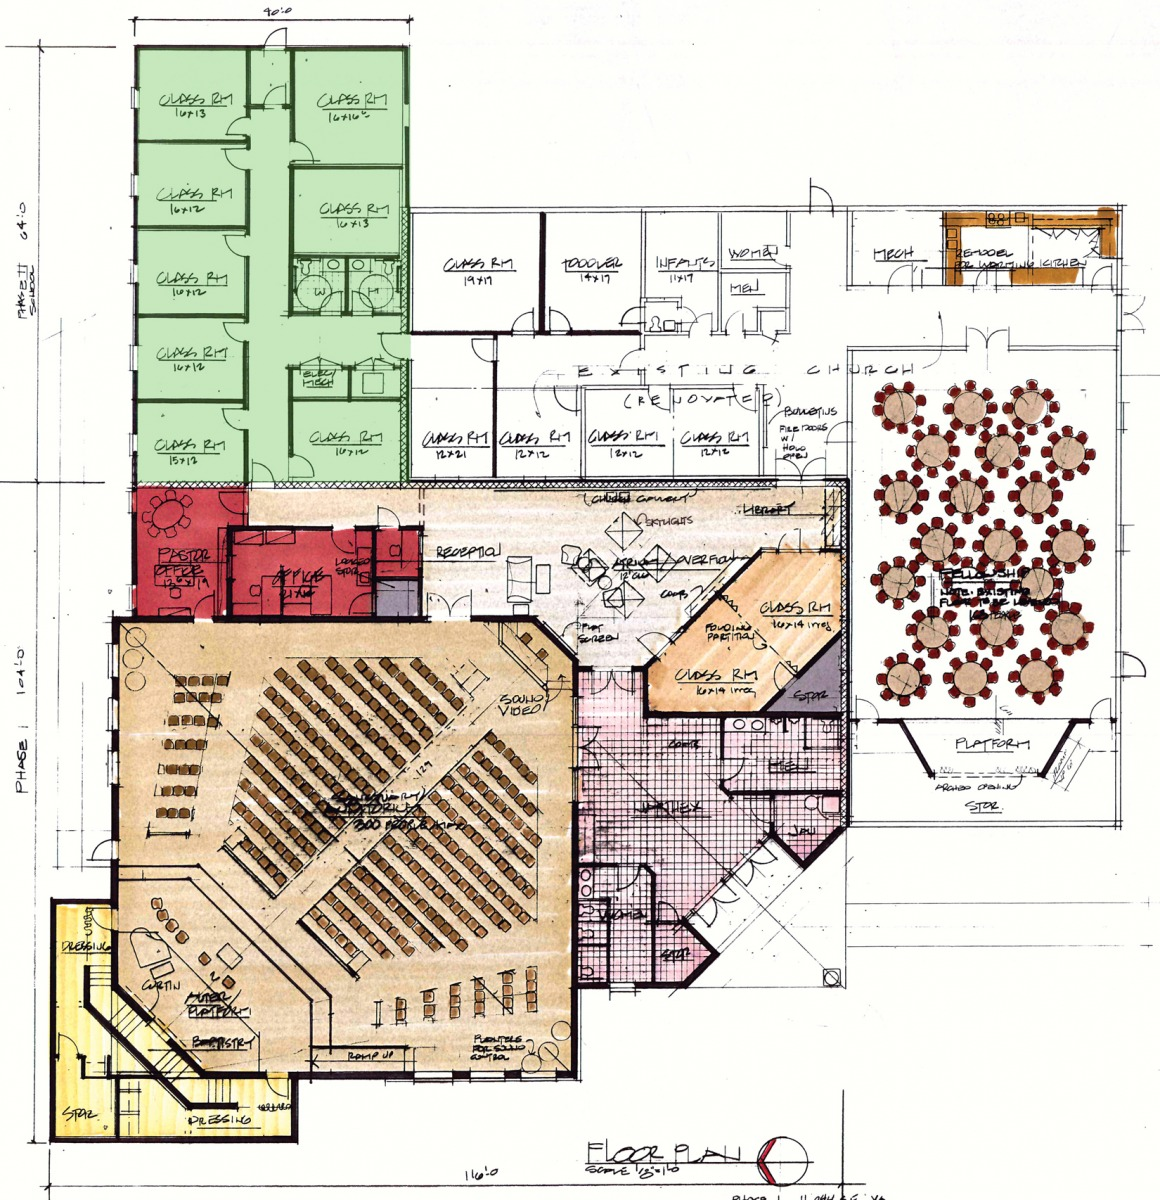 Church building plans and pictures joy studio design for Modern church designs and floor plans